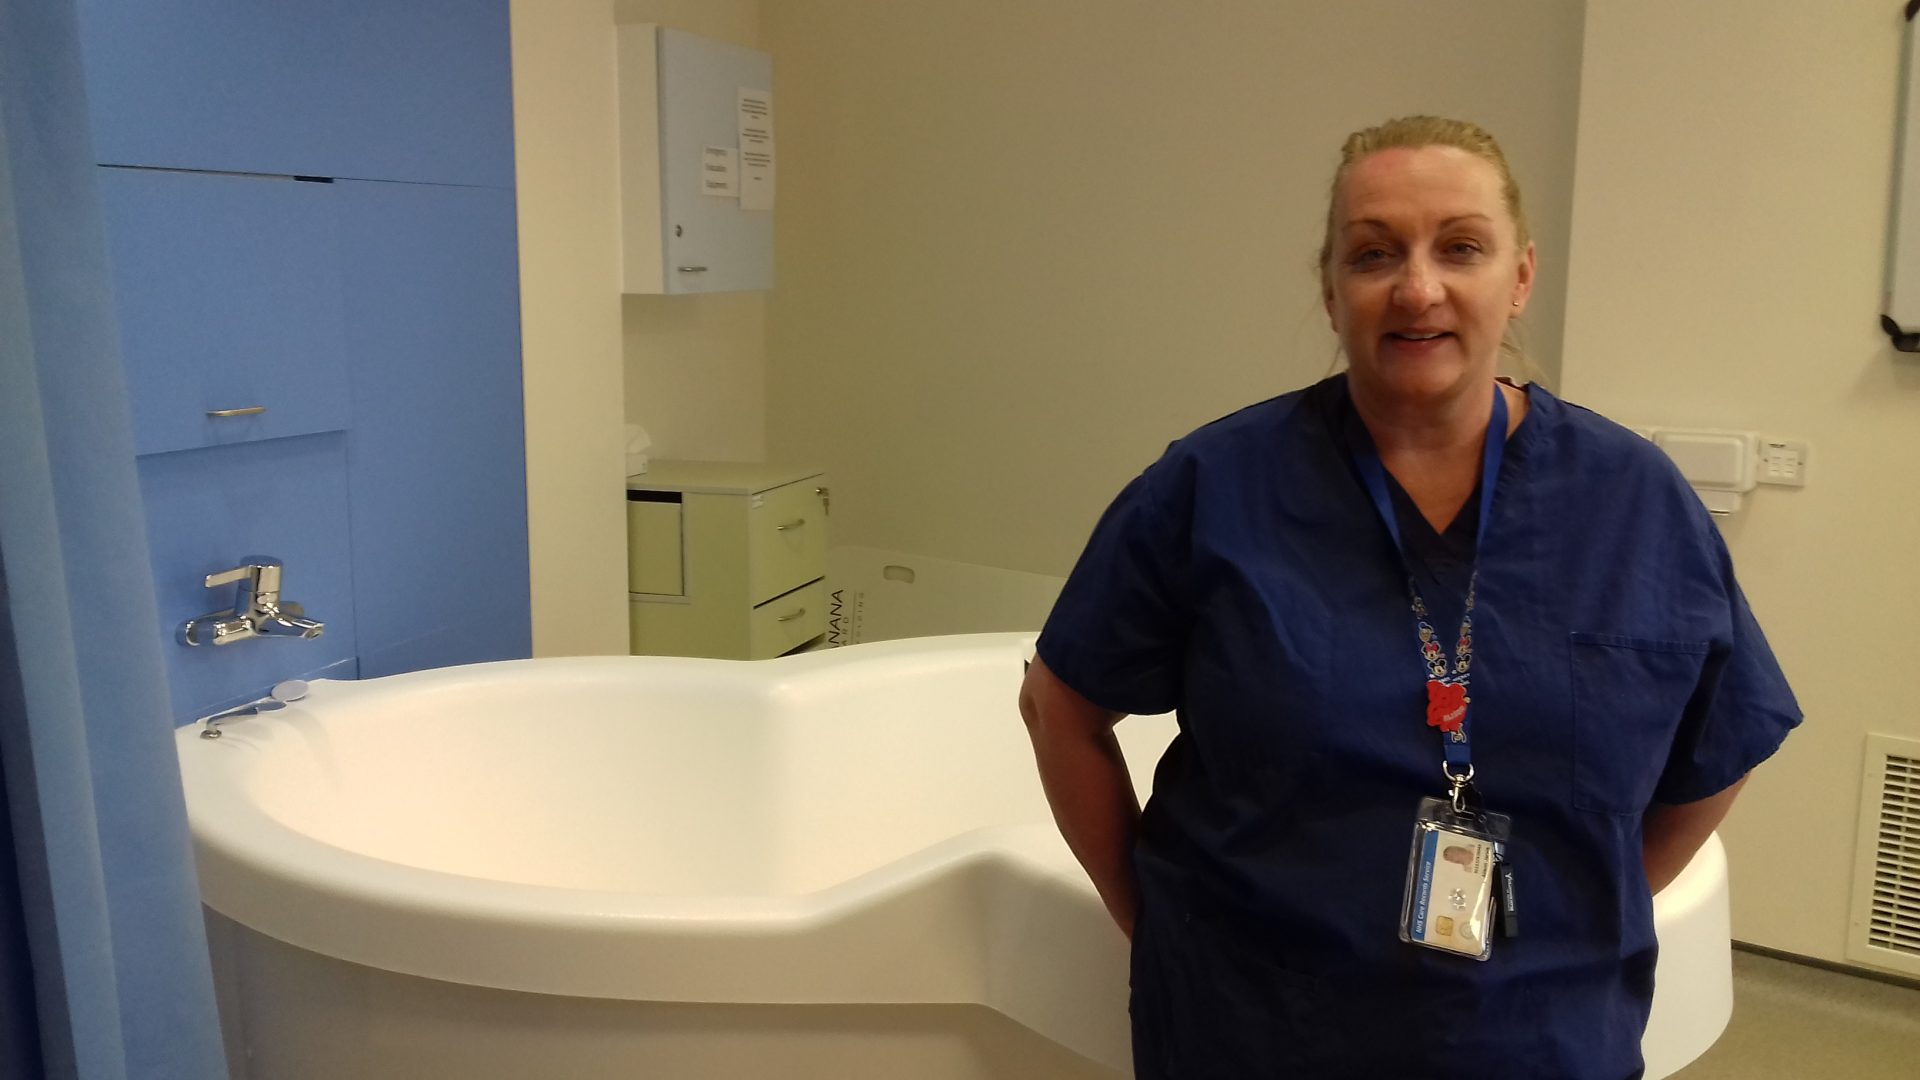 Celebrating international day of the midwife with Alnwick midwife Alison Jarvis